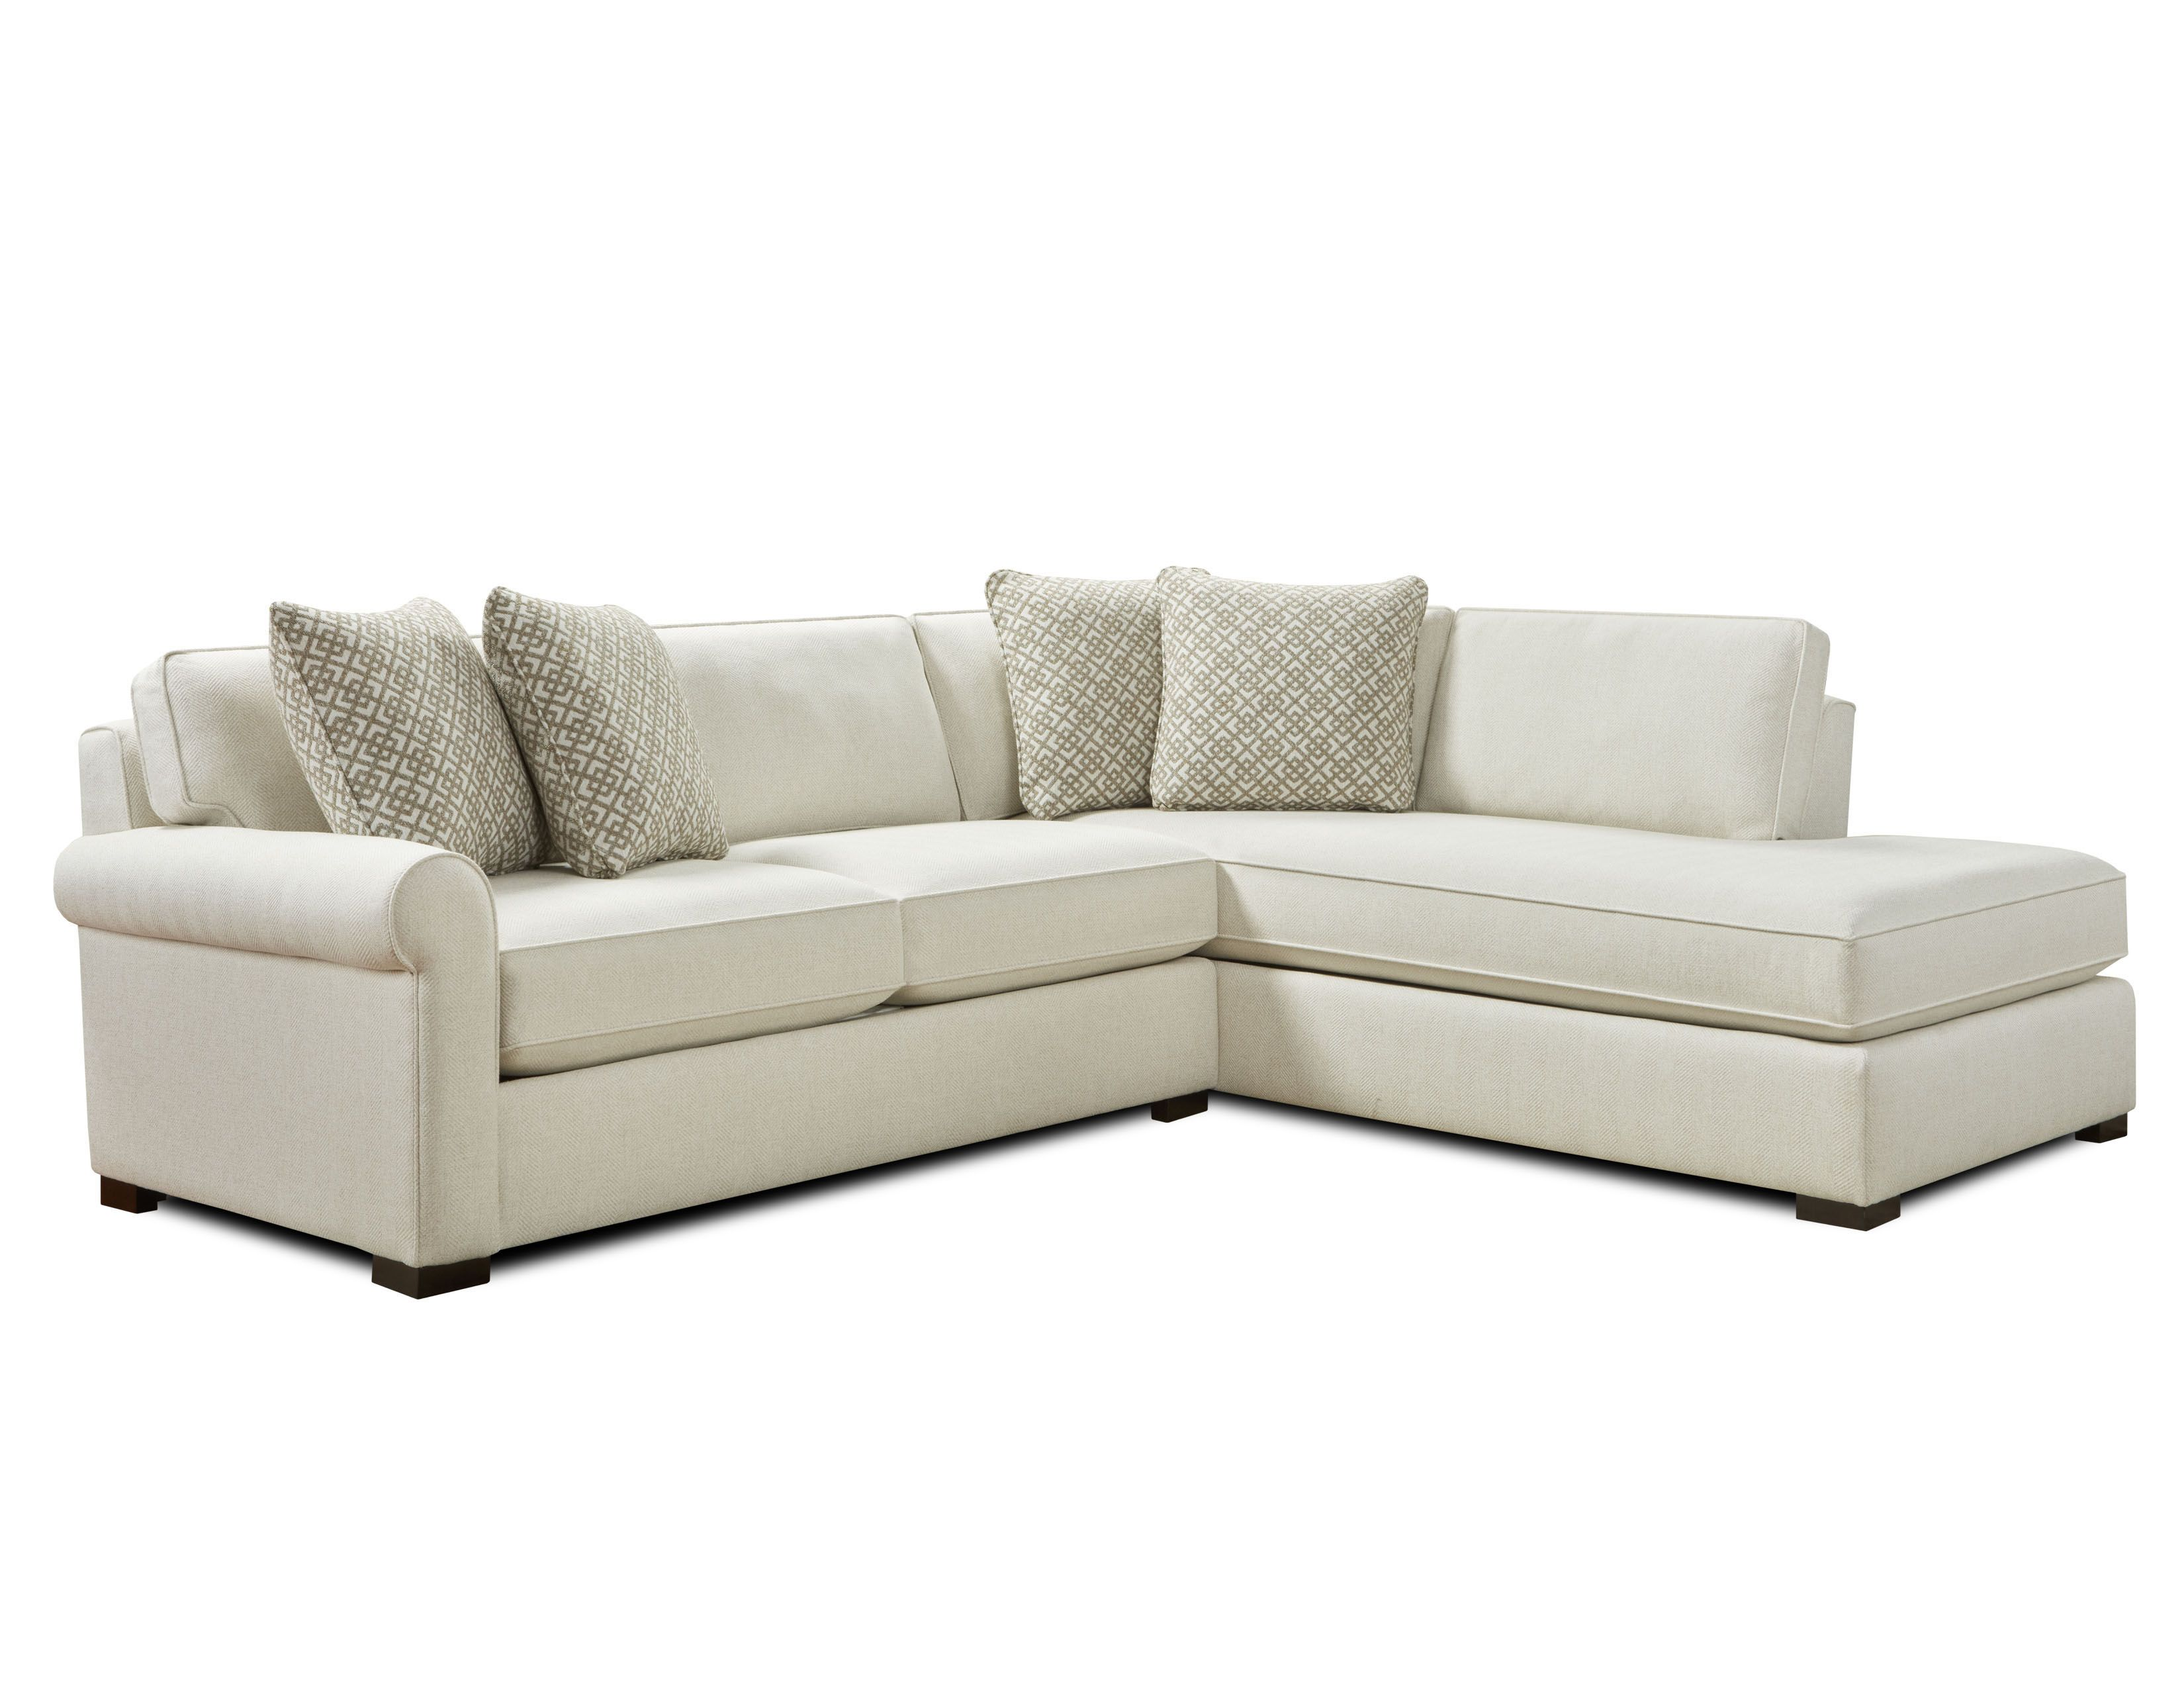 Turin 2 Piece Sectional In Turin Natural Sectional Sofa Livingroom Furniture Www Jordans Com Sectional Furniture Living Room Sets